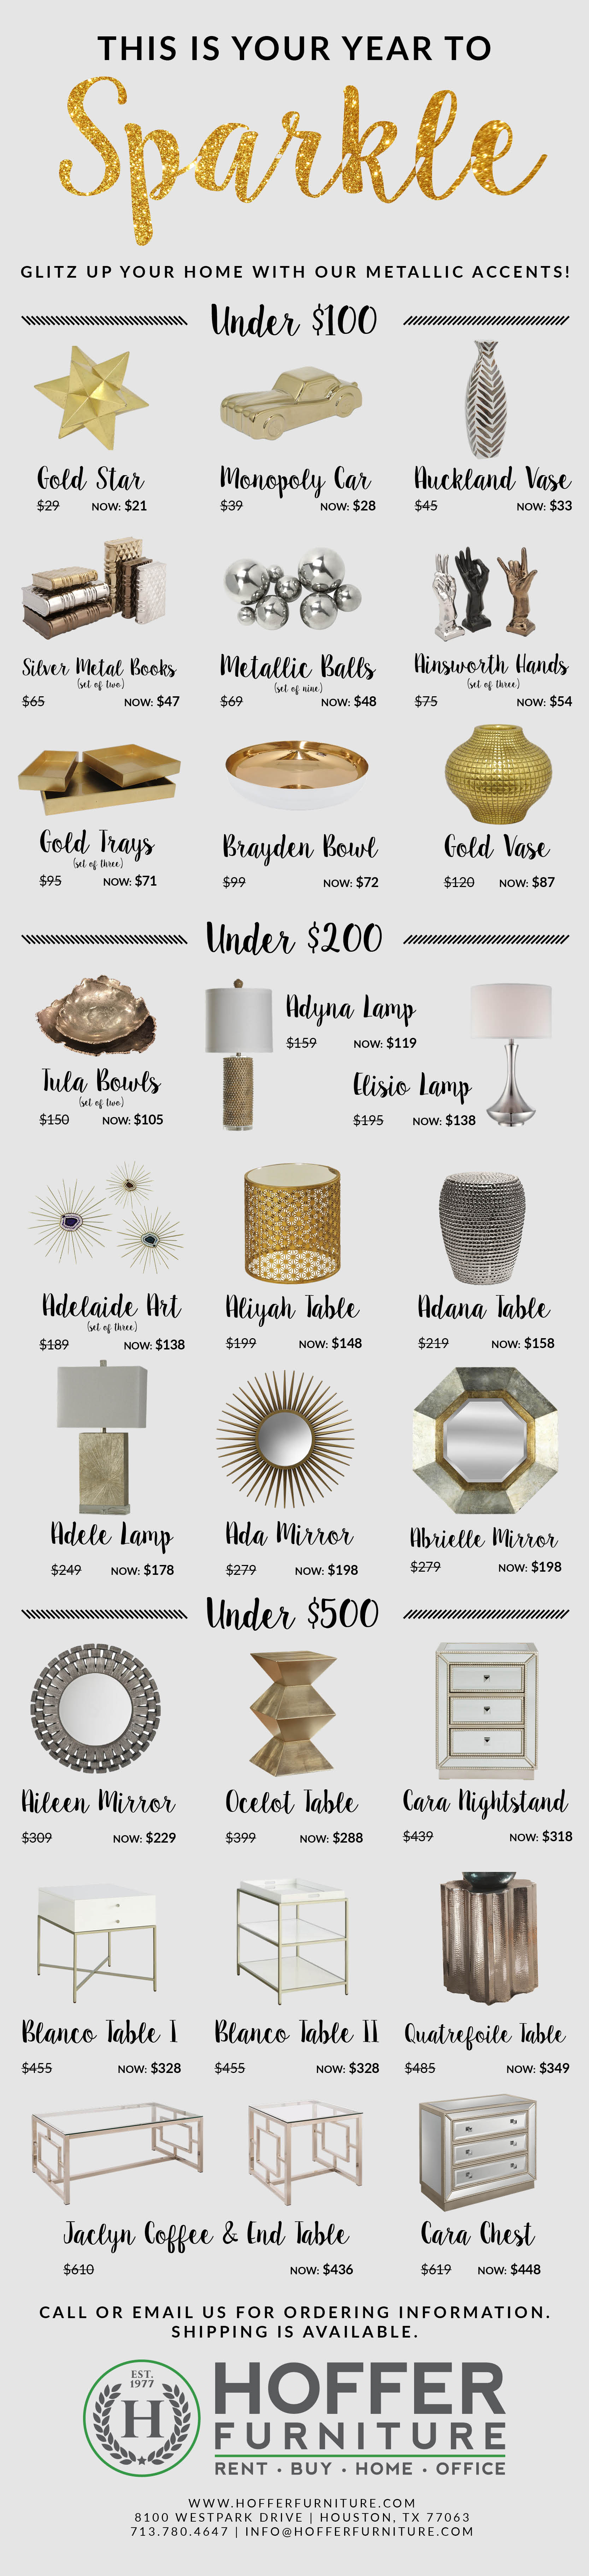 the best metallic home accents of 2017 - hoffer furniture